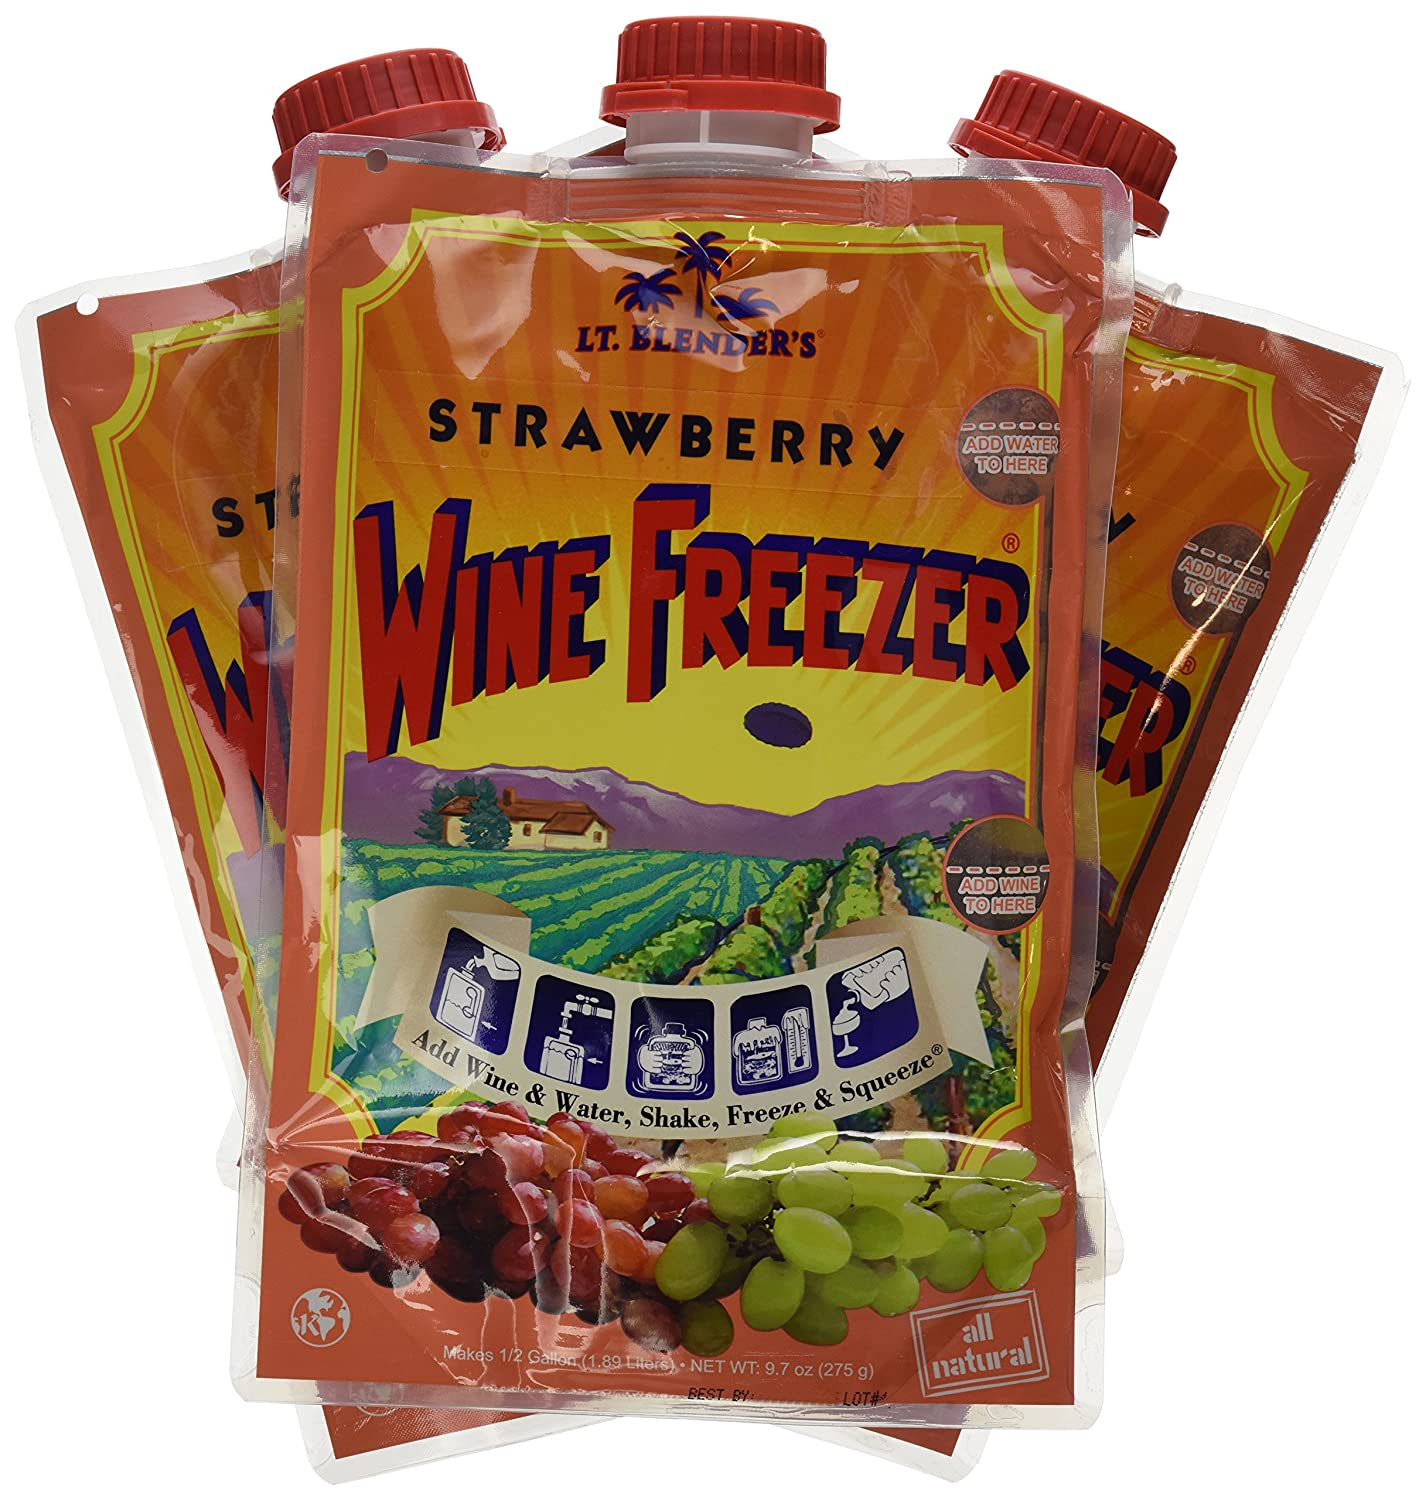 Lt. Blender's Wine Freezer, Strawberry, 9.7-Ounce Pouches (Pack of 3)